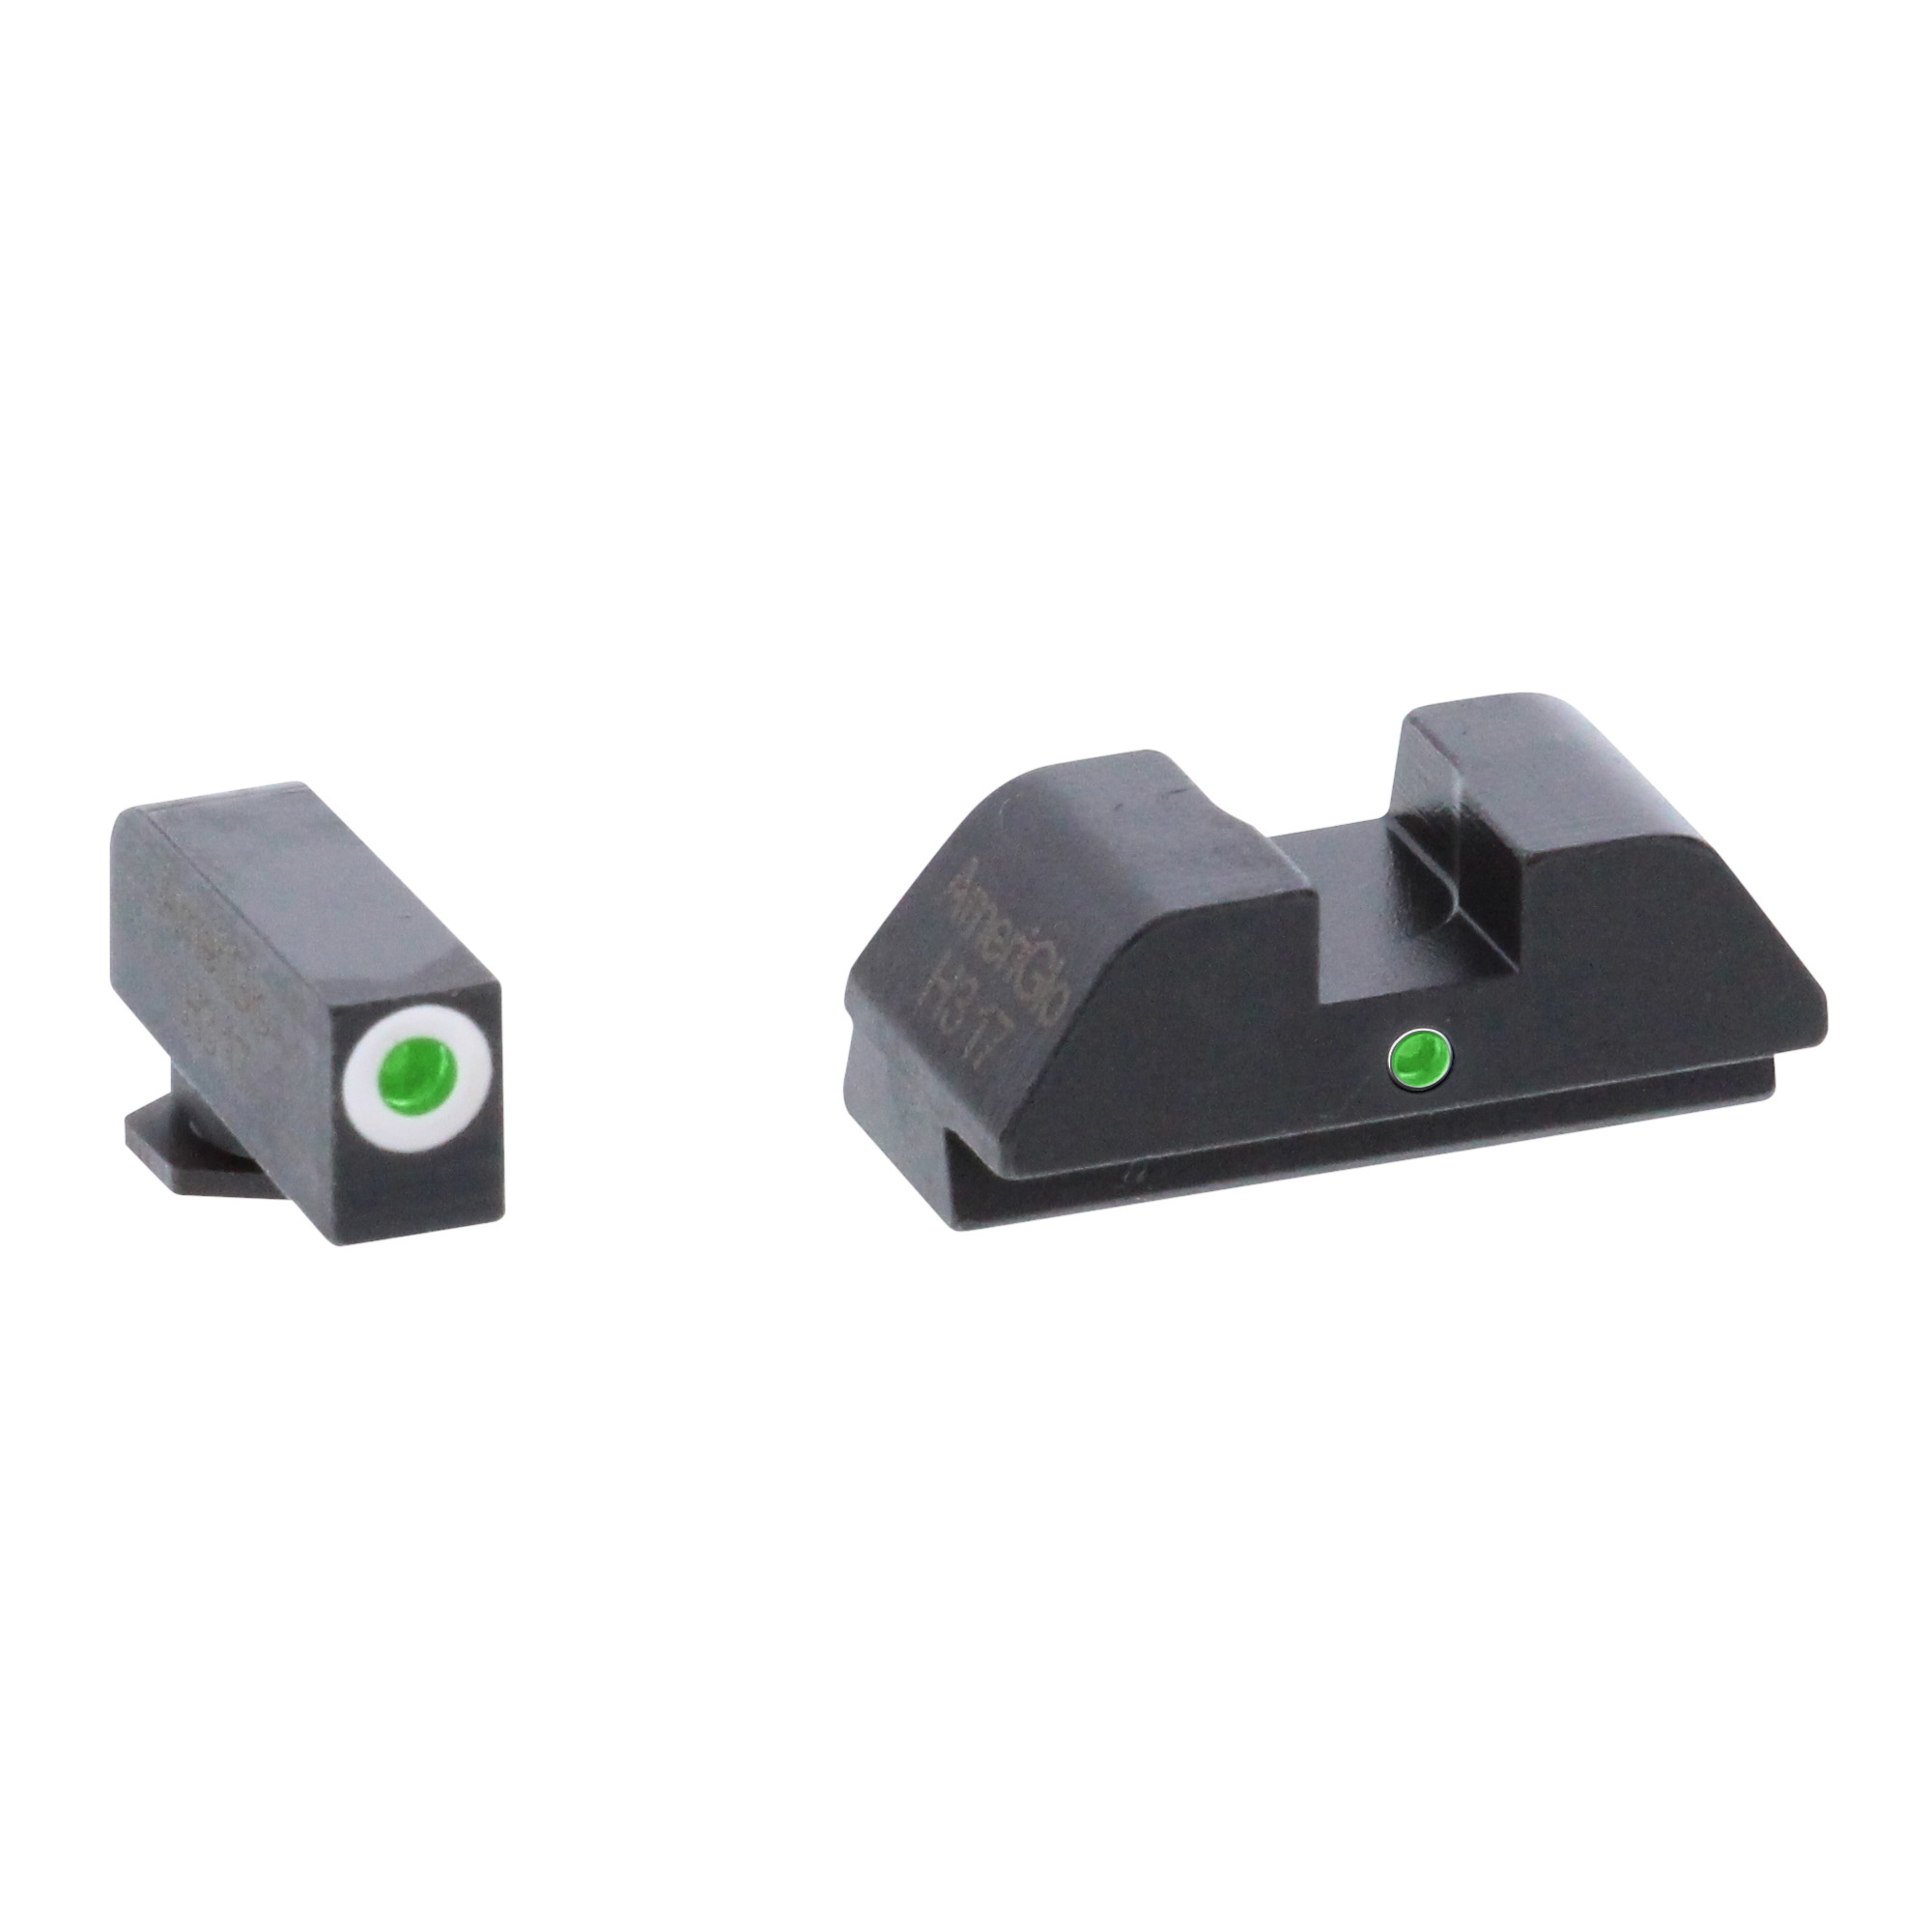 The AmeriGlo I-dot Night Sight Sets are ideal for the person who is looking to increase their speed on target in a defensive situation. The I-dot configuration utilizes a dot over dot method for quick vertical sight alignment and fast target acquisition. The I-dots also provide you with an extended rear sight for a bit extra sight radius and a glare reducing undercut rear face. This is a superb design for all shooters. The sights are housed in a steel frame which features a matte black finish. This set has a green tritium front sight with white front outline and a green tritium rear with square notch.